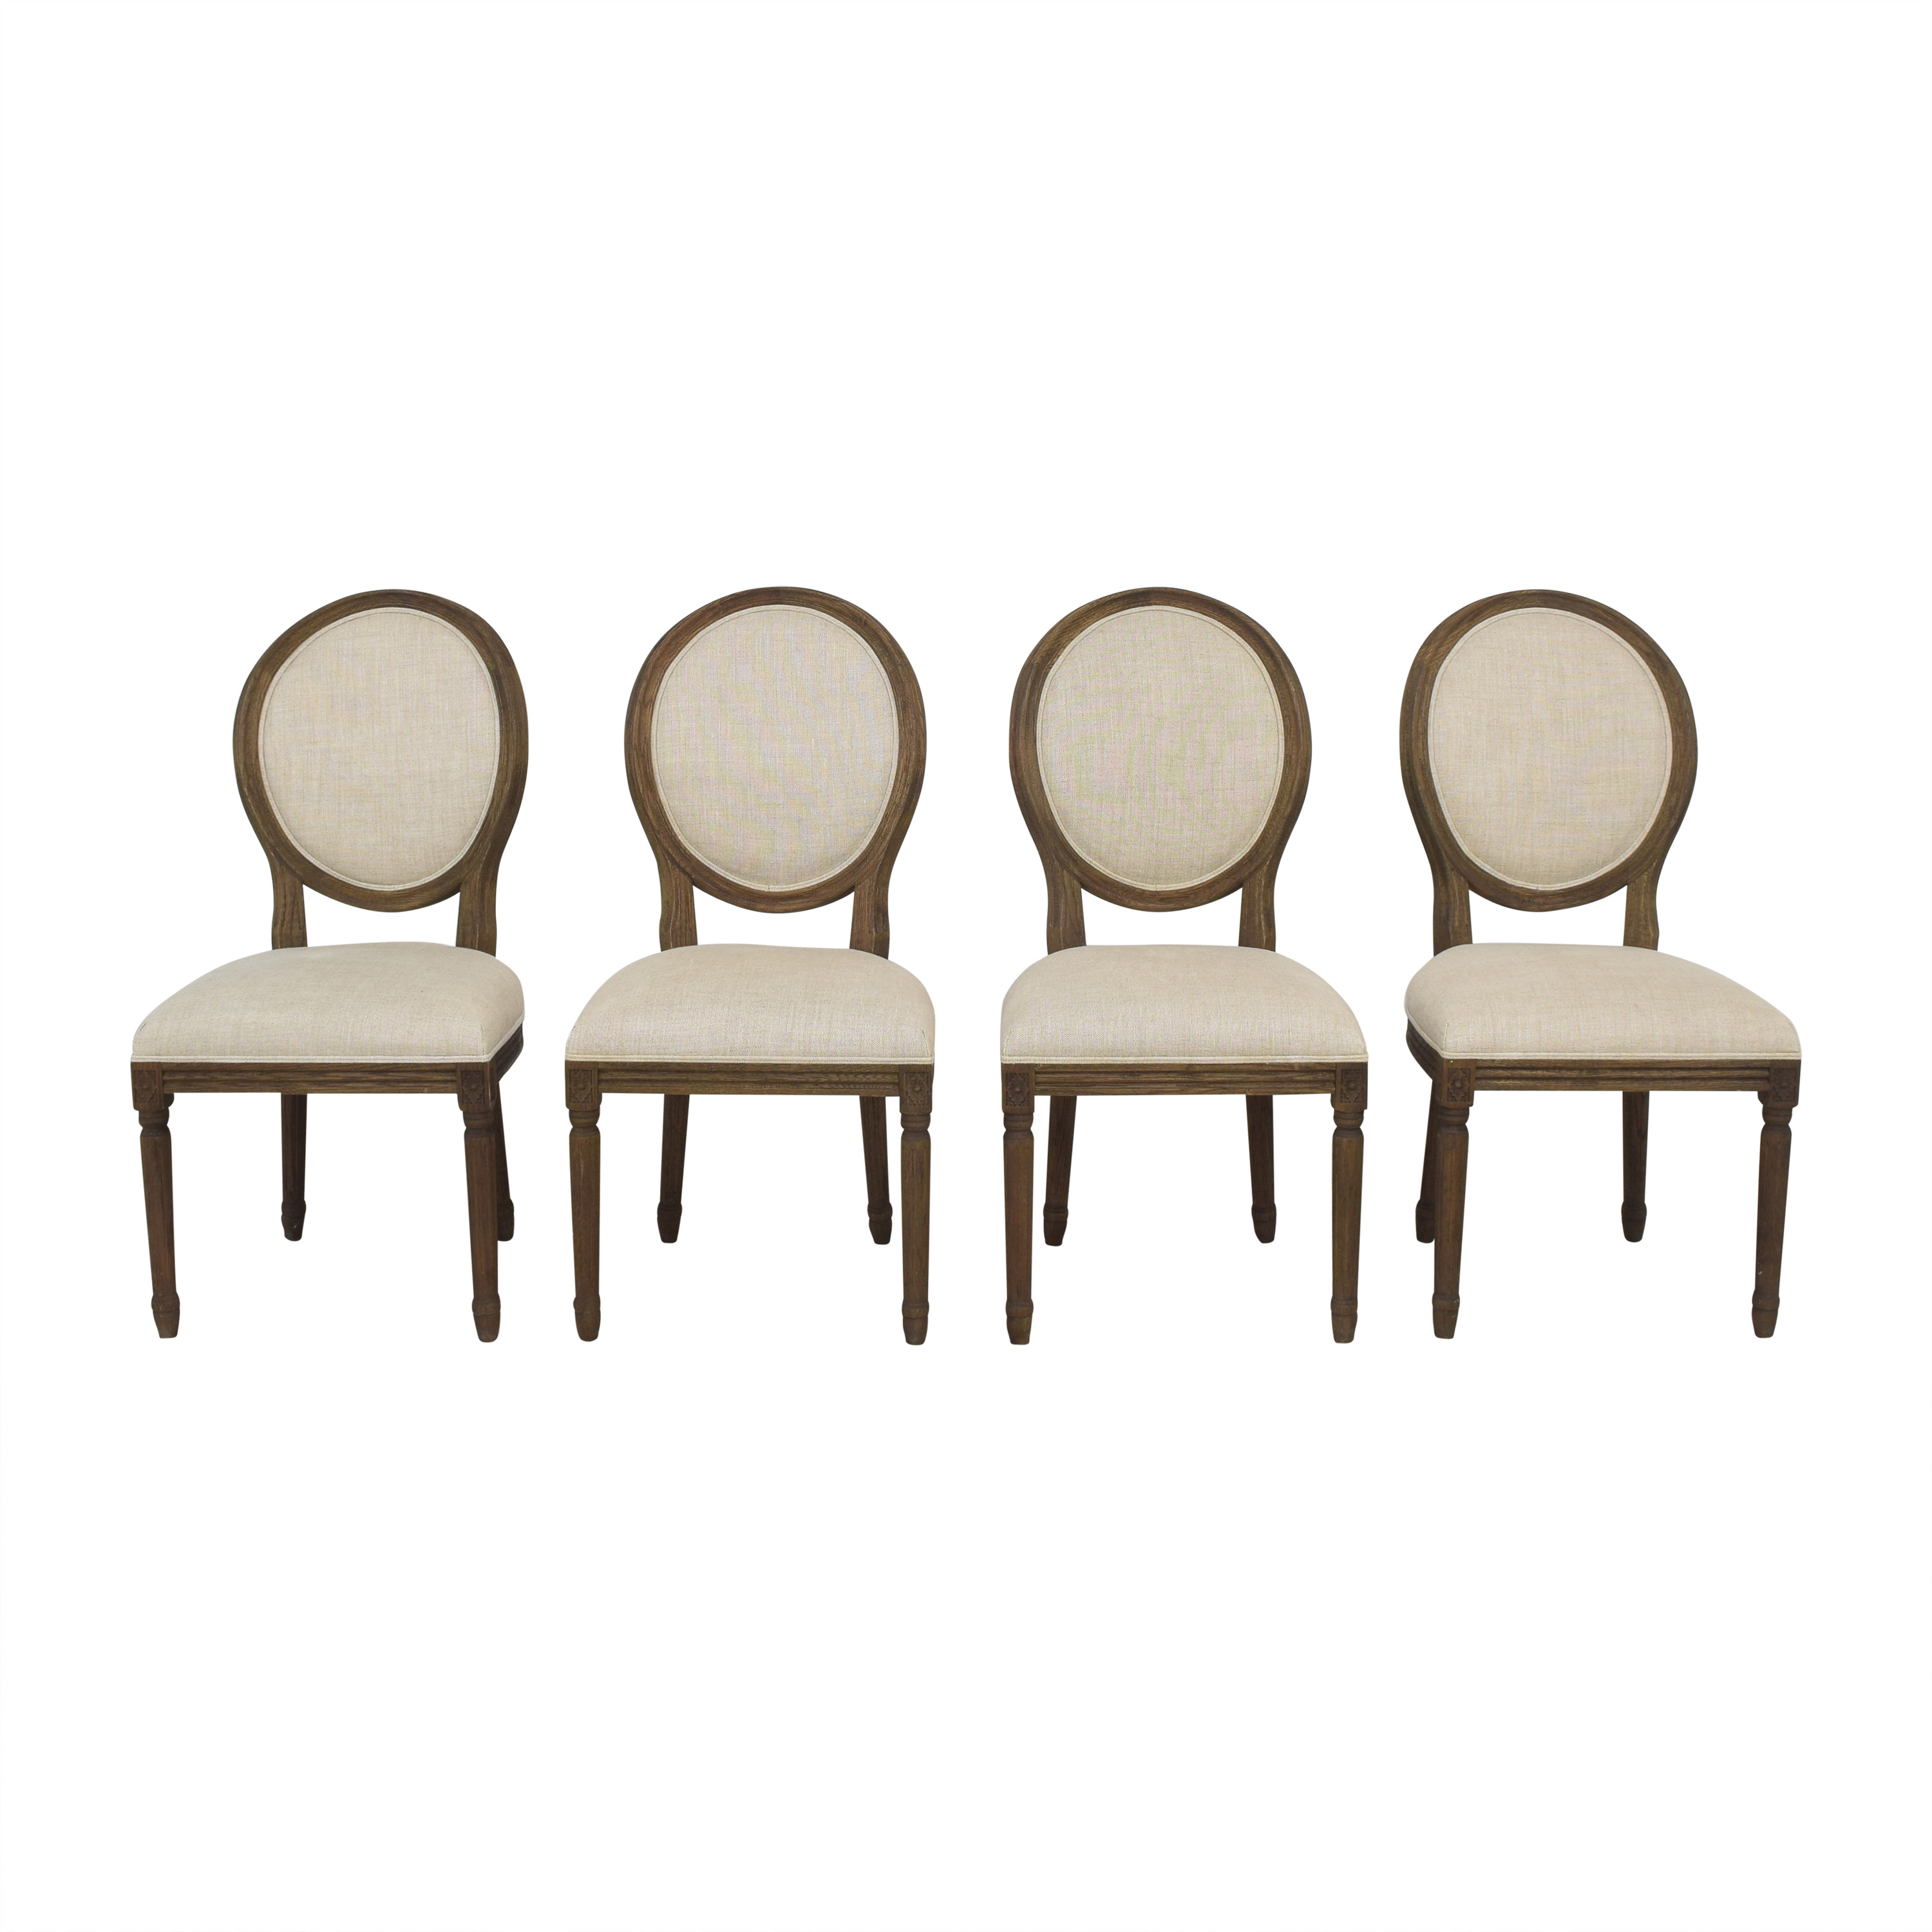 Restoration Hardware Restoration Hardware Vintage French Round Dining Side Chairs coupon